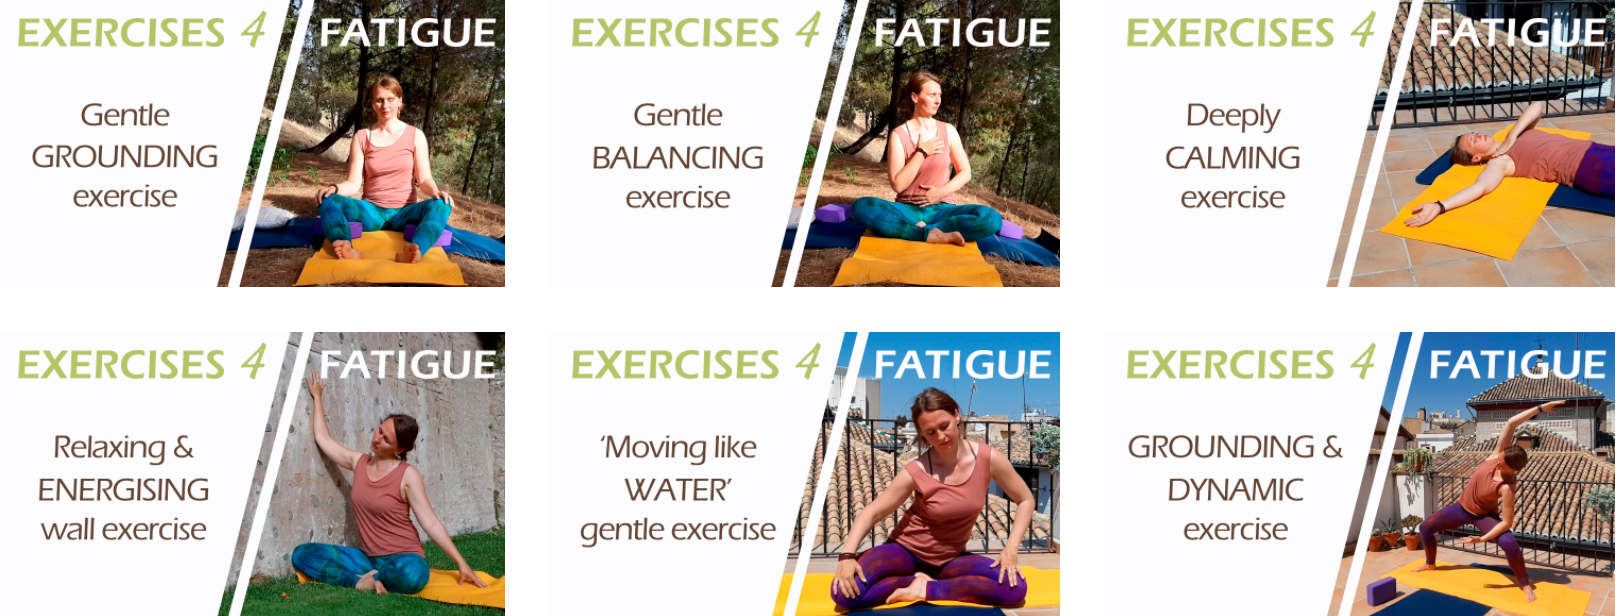 Gentle Exercises for Chronic Fatigue and Chronic Pain